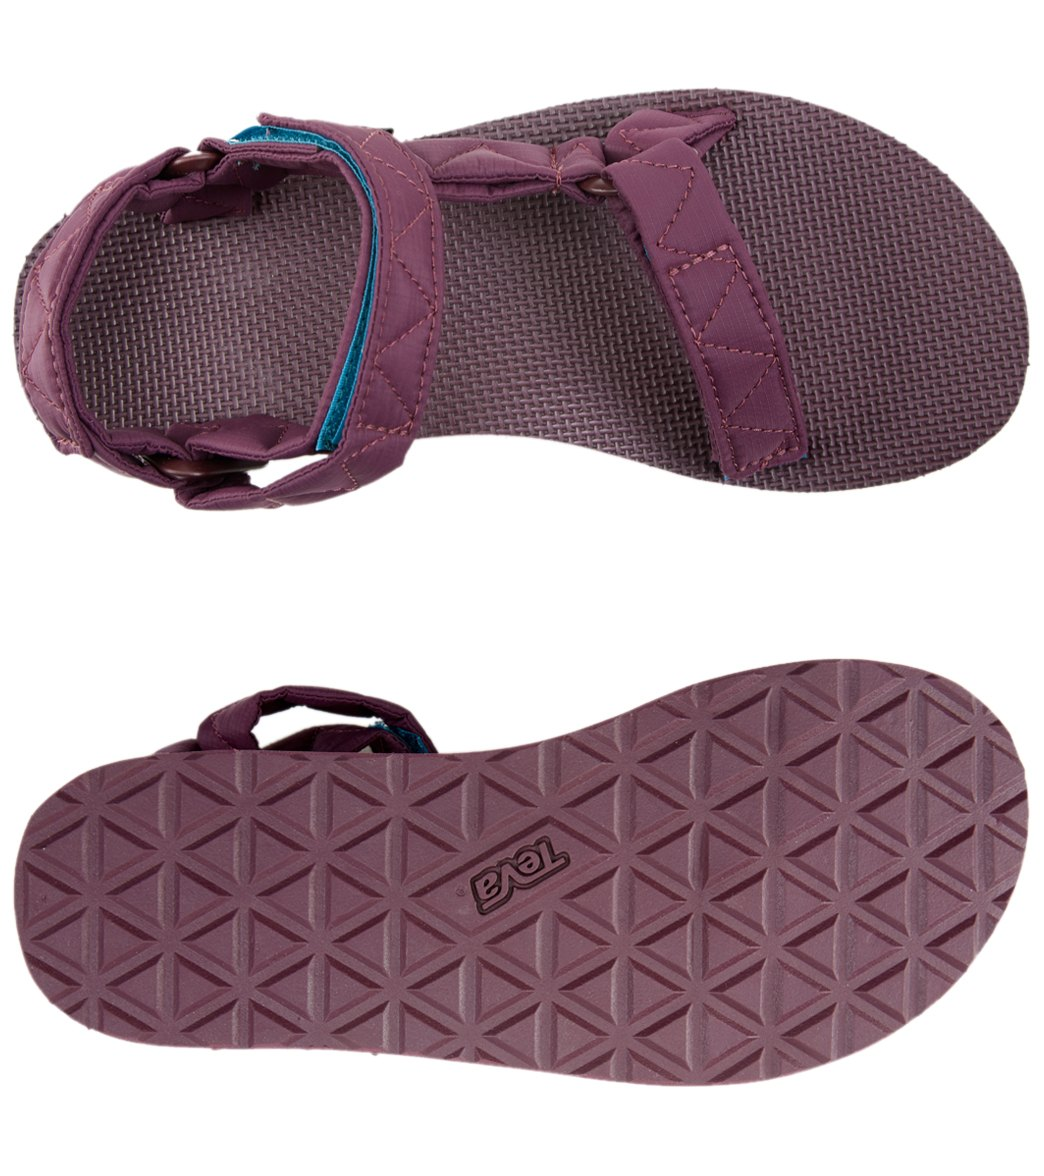 fb06f9c77ff2 Teva Women s Original Universal Puff Sandal at SwimOutlet.com - Free ...